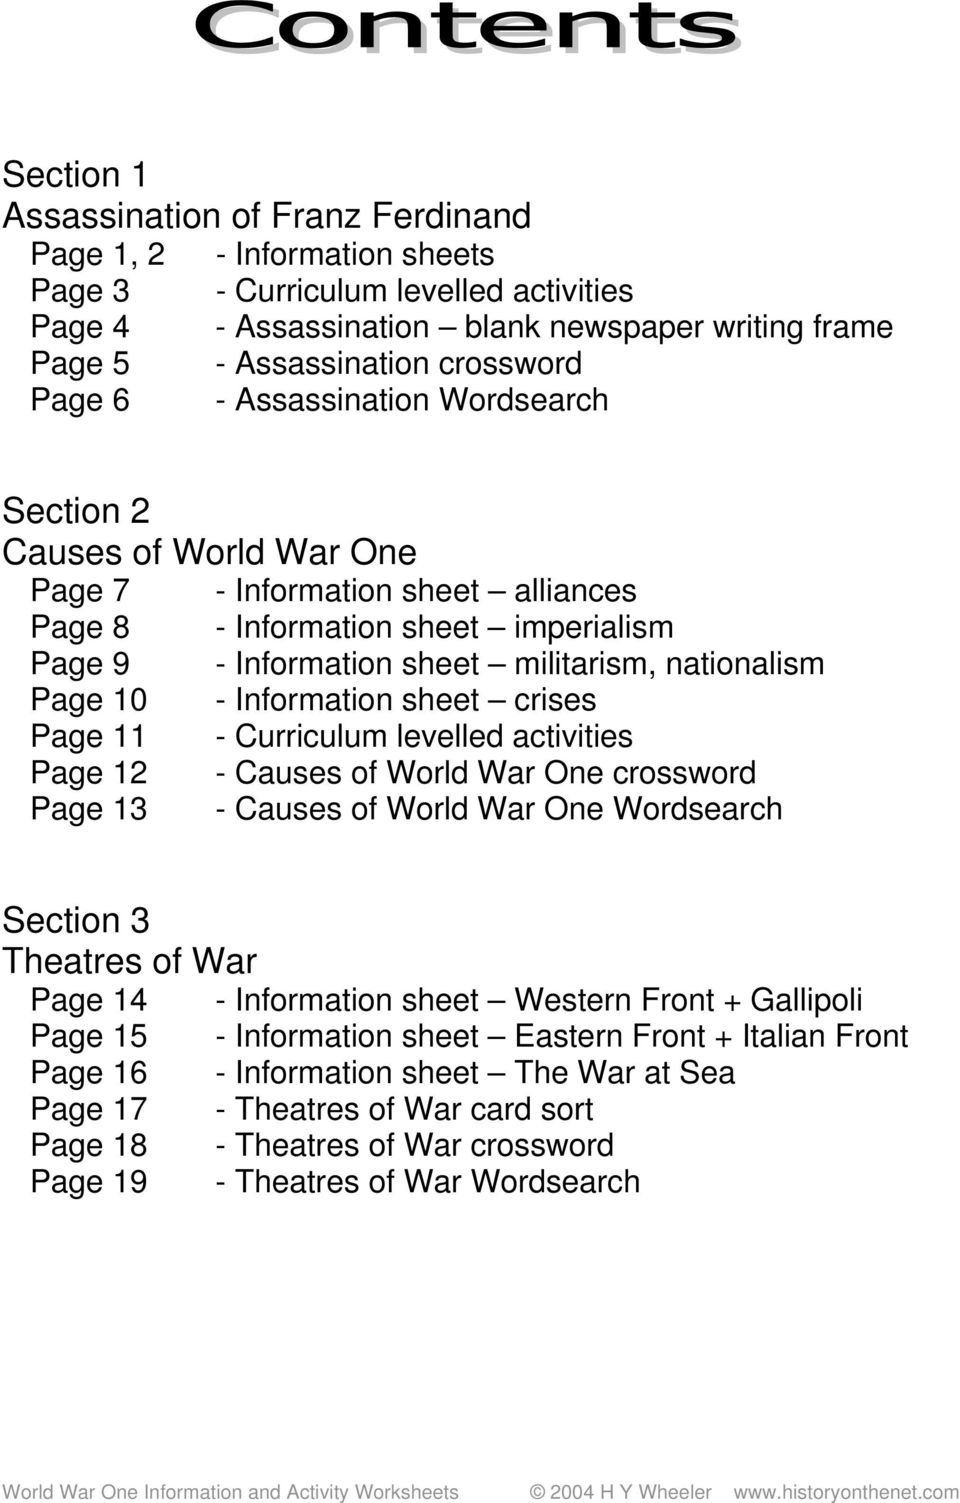 worksheet World War 1 Worksheet world war one information and activity worksheets pdf 10 sheet crises page 11 curriculum levelled activities 12 causes of